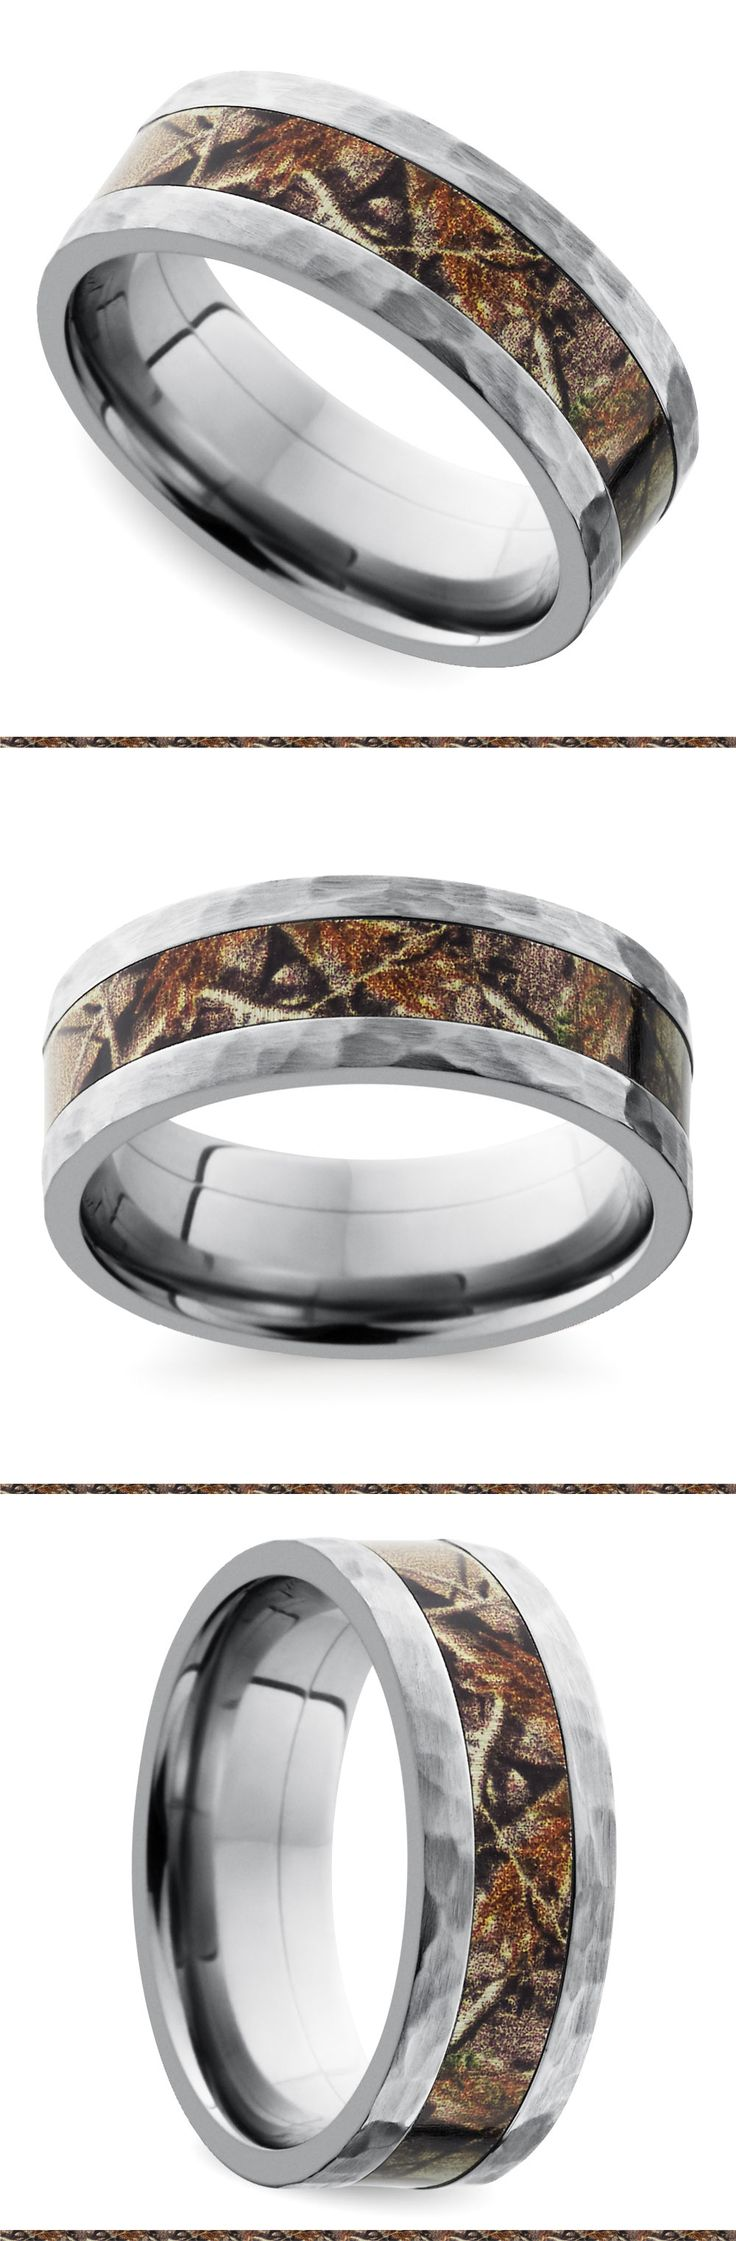 This flat 6 mm band features a Realtree camouflage inlay on a titanium base with hammered edges. Proudly made in the USA and comfort fit.